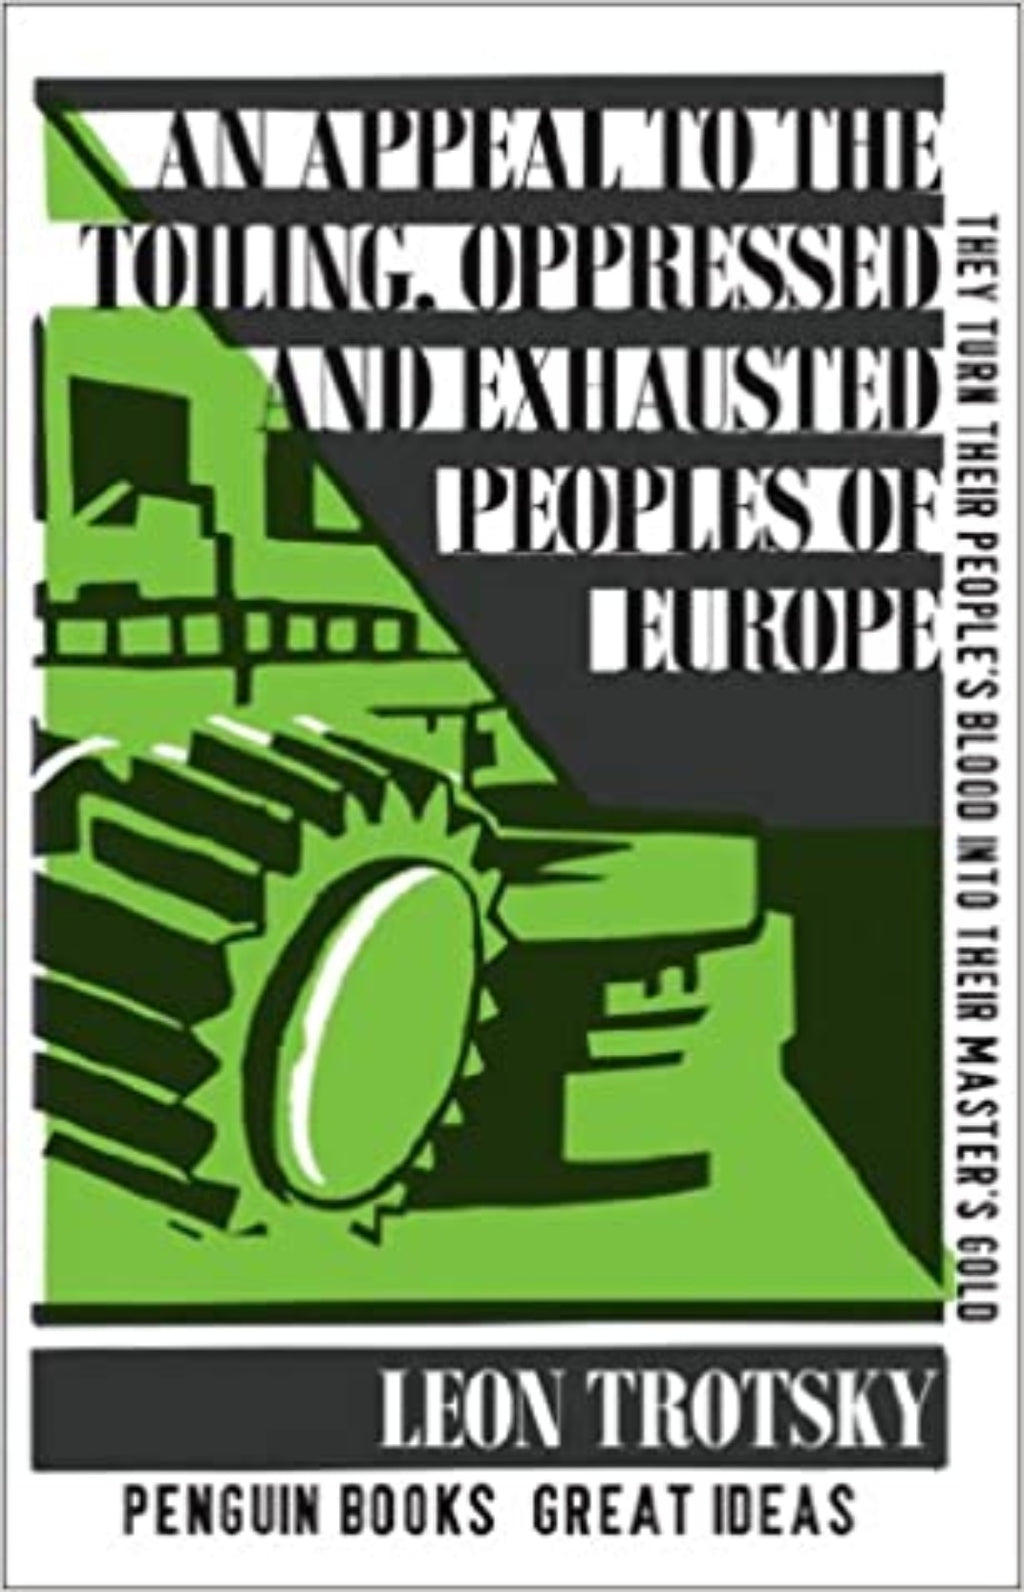 An Appeal to the Toiling, Oppressed and Exhausted Peoples of Europe - Penguin Great Ideas